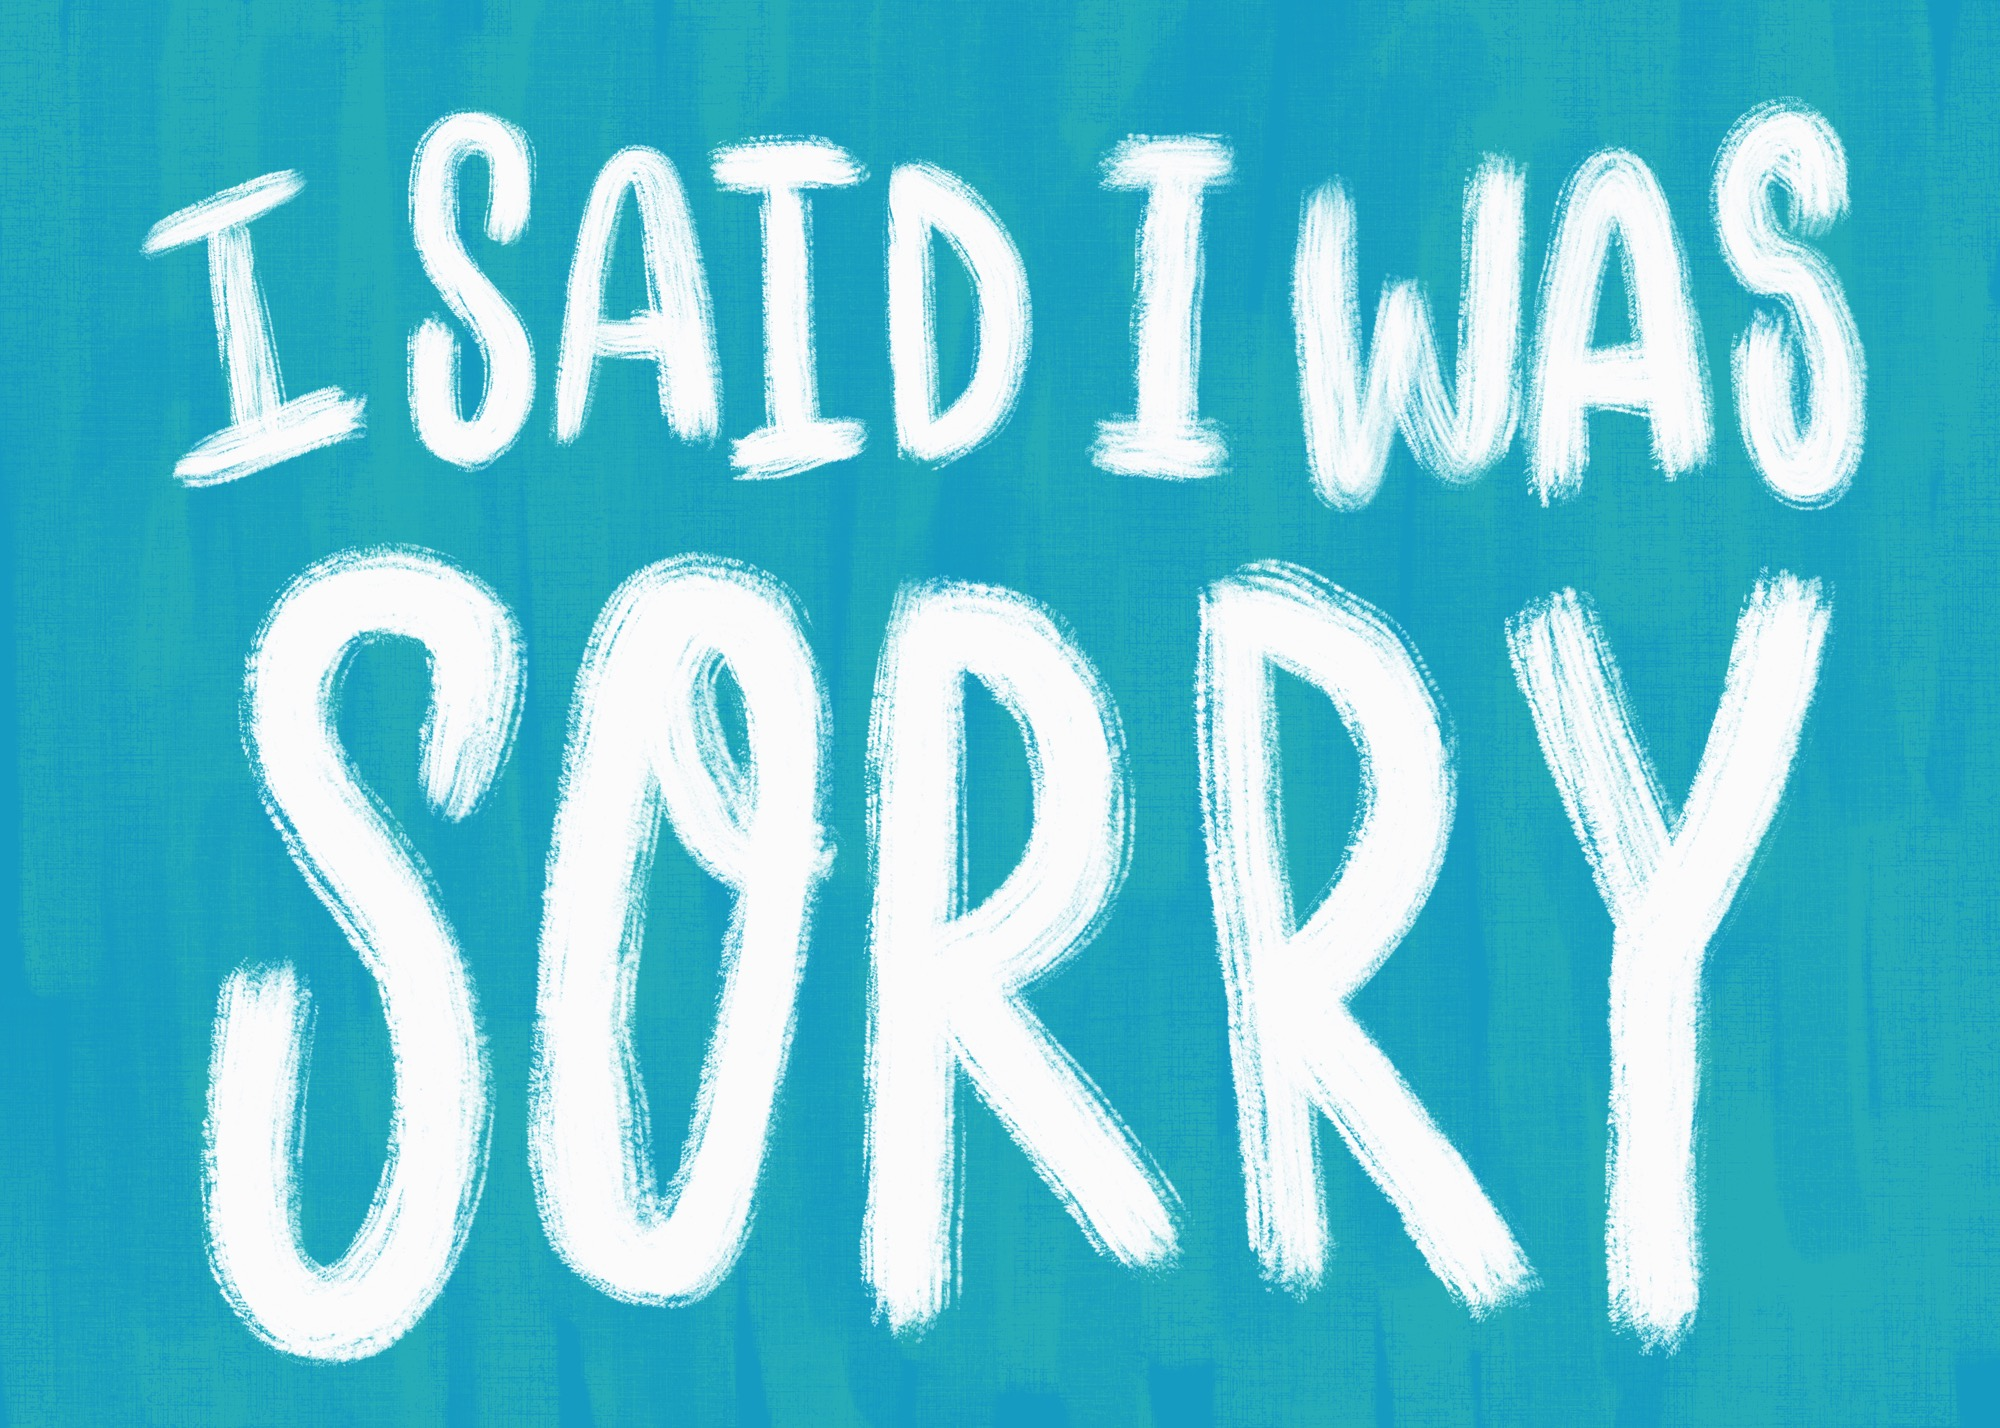 Apology by Lisa Bardot